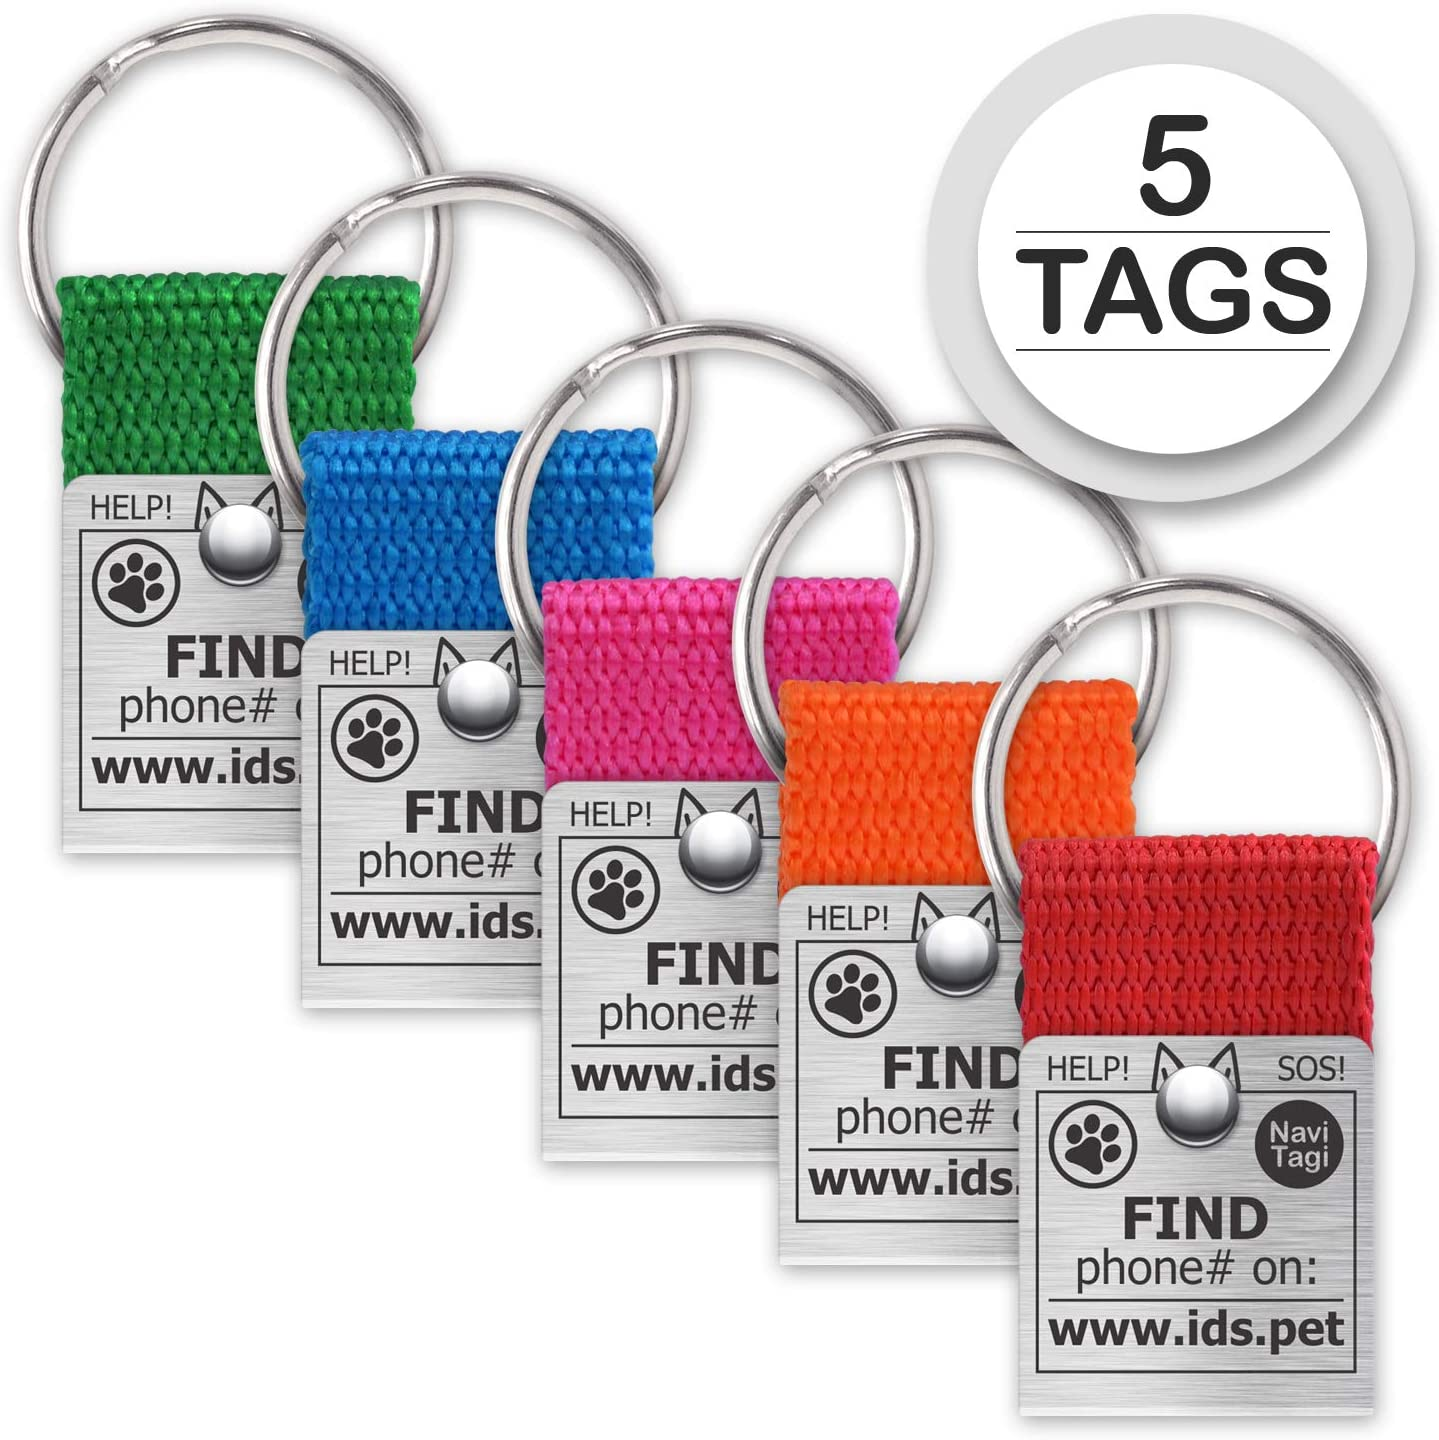 NaviTagi Color Pet ID Tags for Small/Medium/Large Dogs, Cats. Personalized w/ID Number. Reliable Design, Strong Stainless Steel Ring. 2 Phones Updatable Online, Name Safe